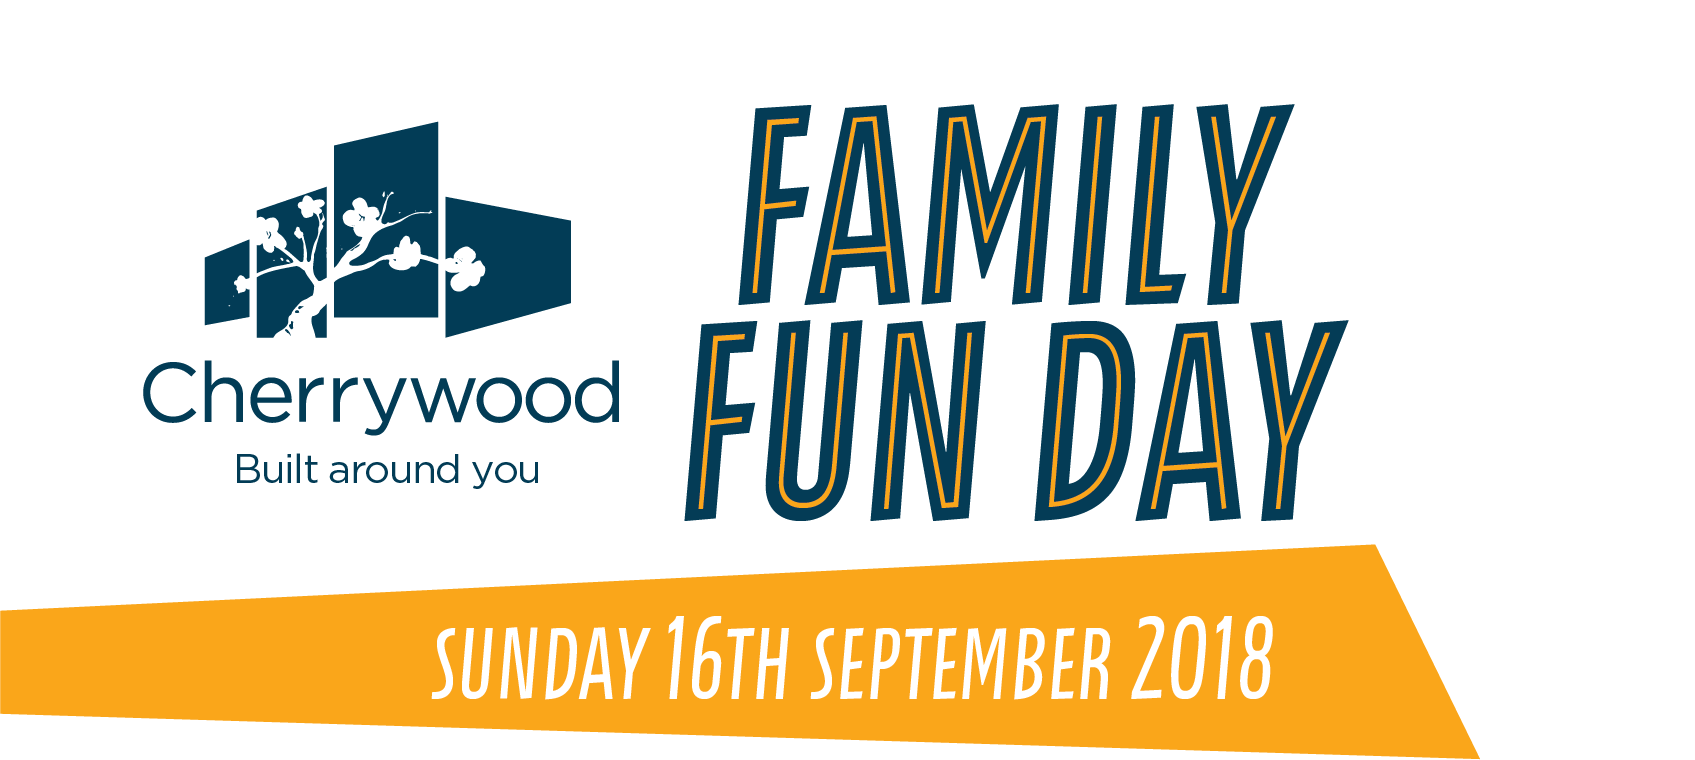 FamilyFunDay@3x.png